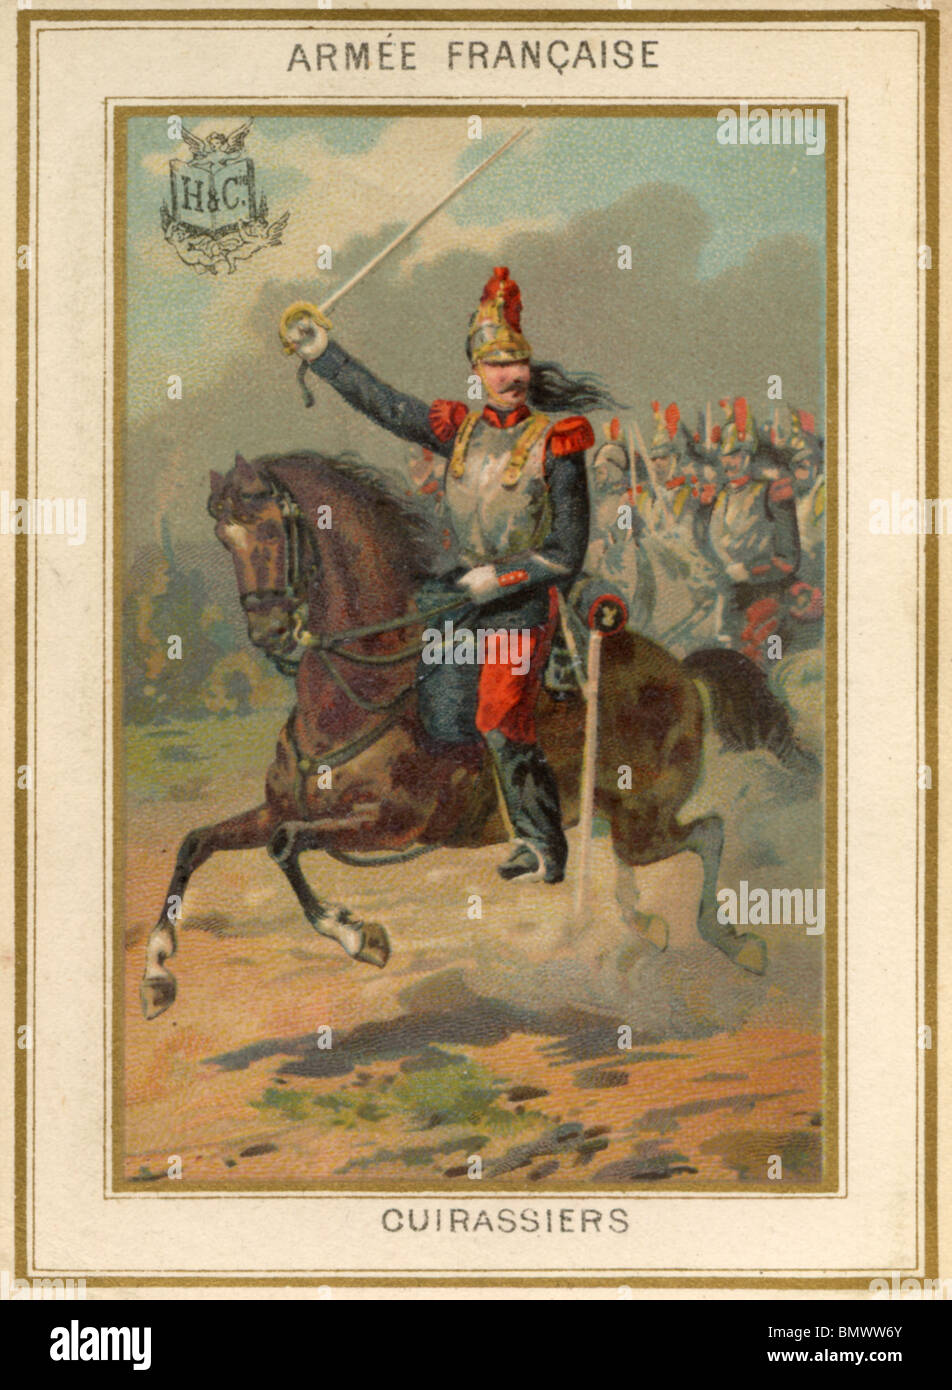 French Army - Cuirassiers Stock Photo